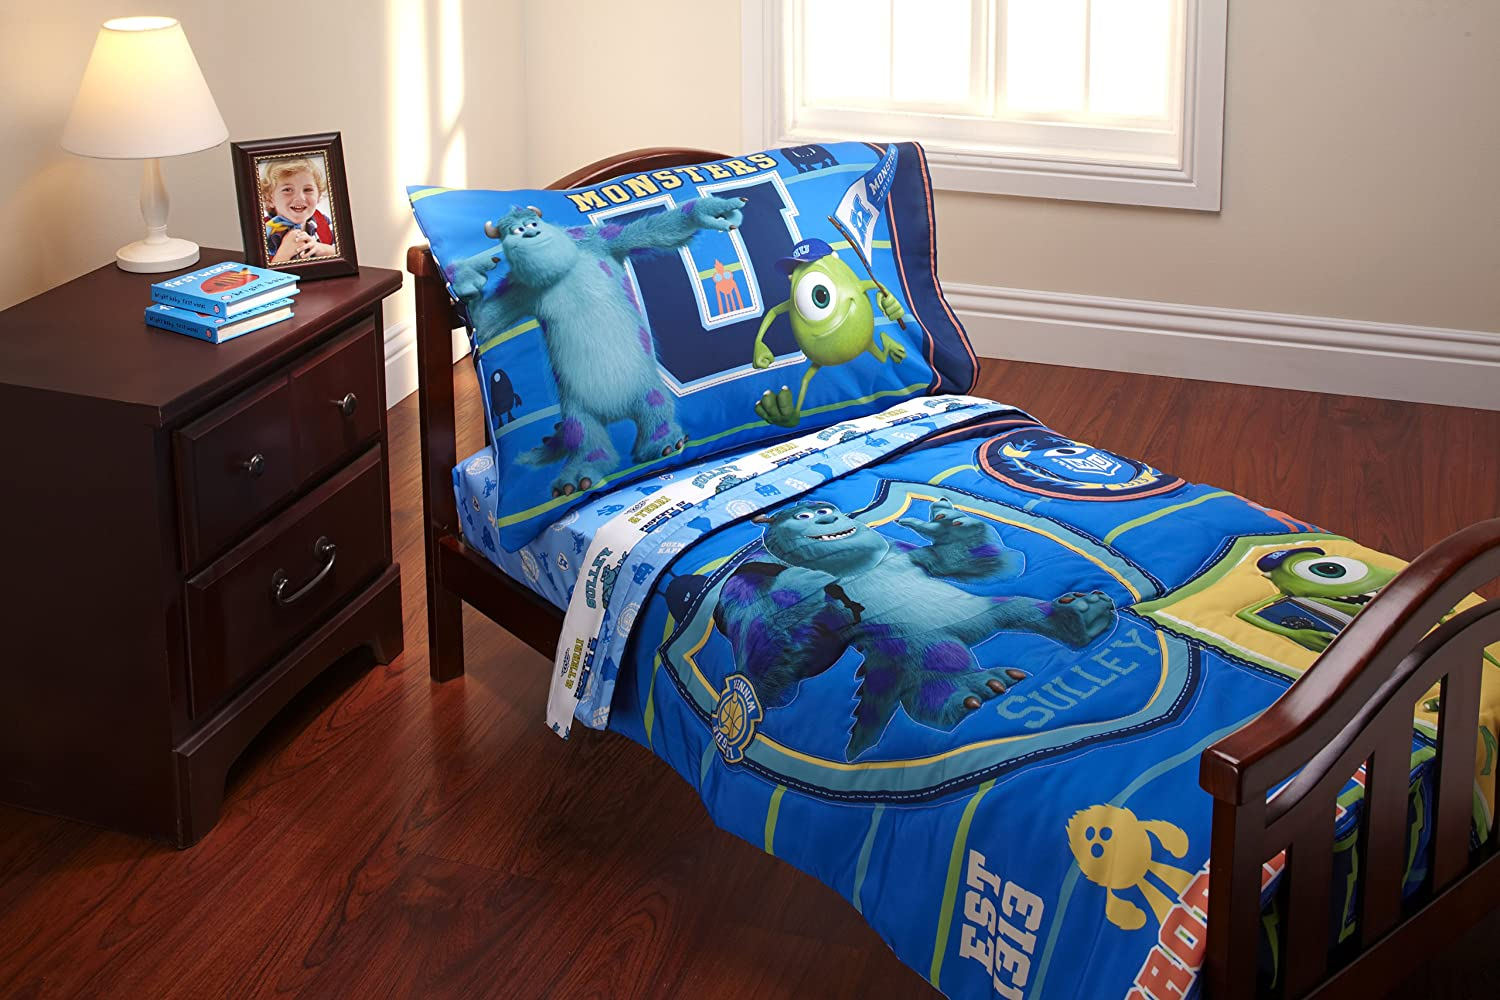 Disney 4 Piece Toddler Set Disney 4 Piece Toddler SetBuy It! Monsters Inc  Bedroom Decor. Search For: